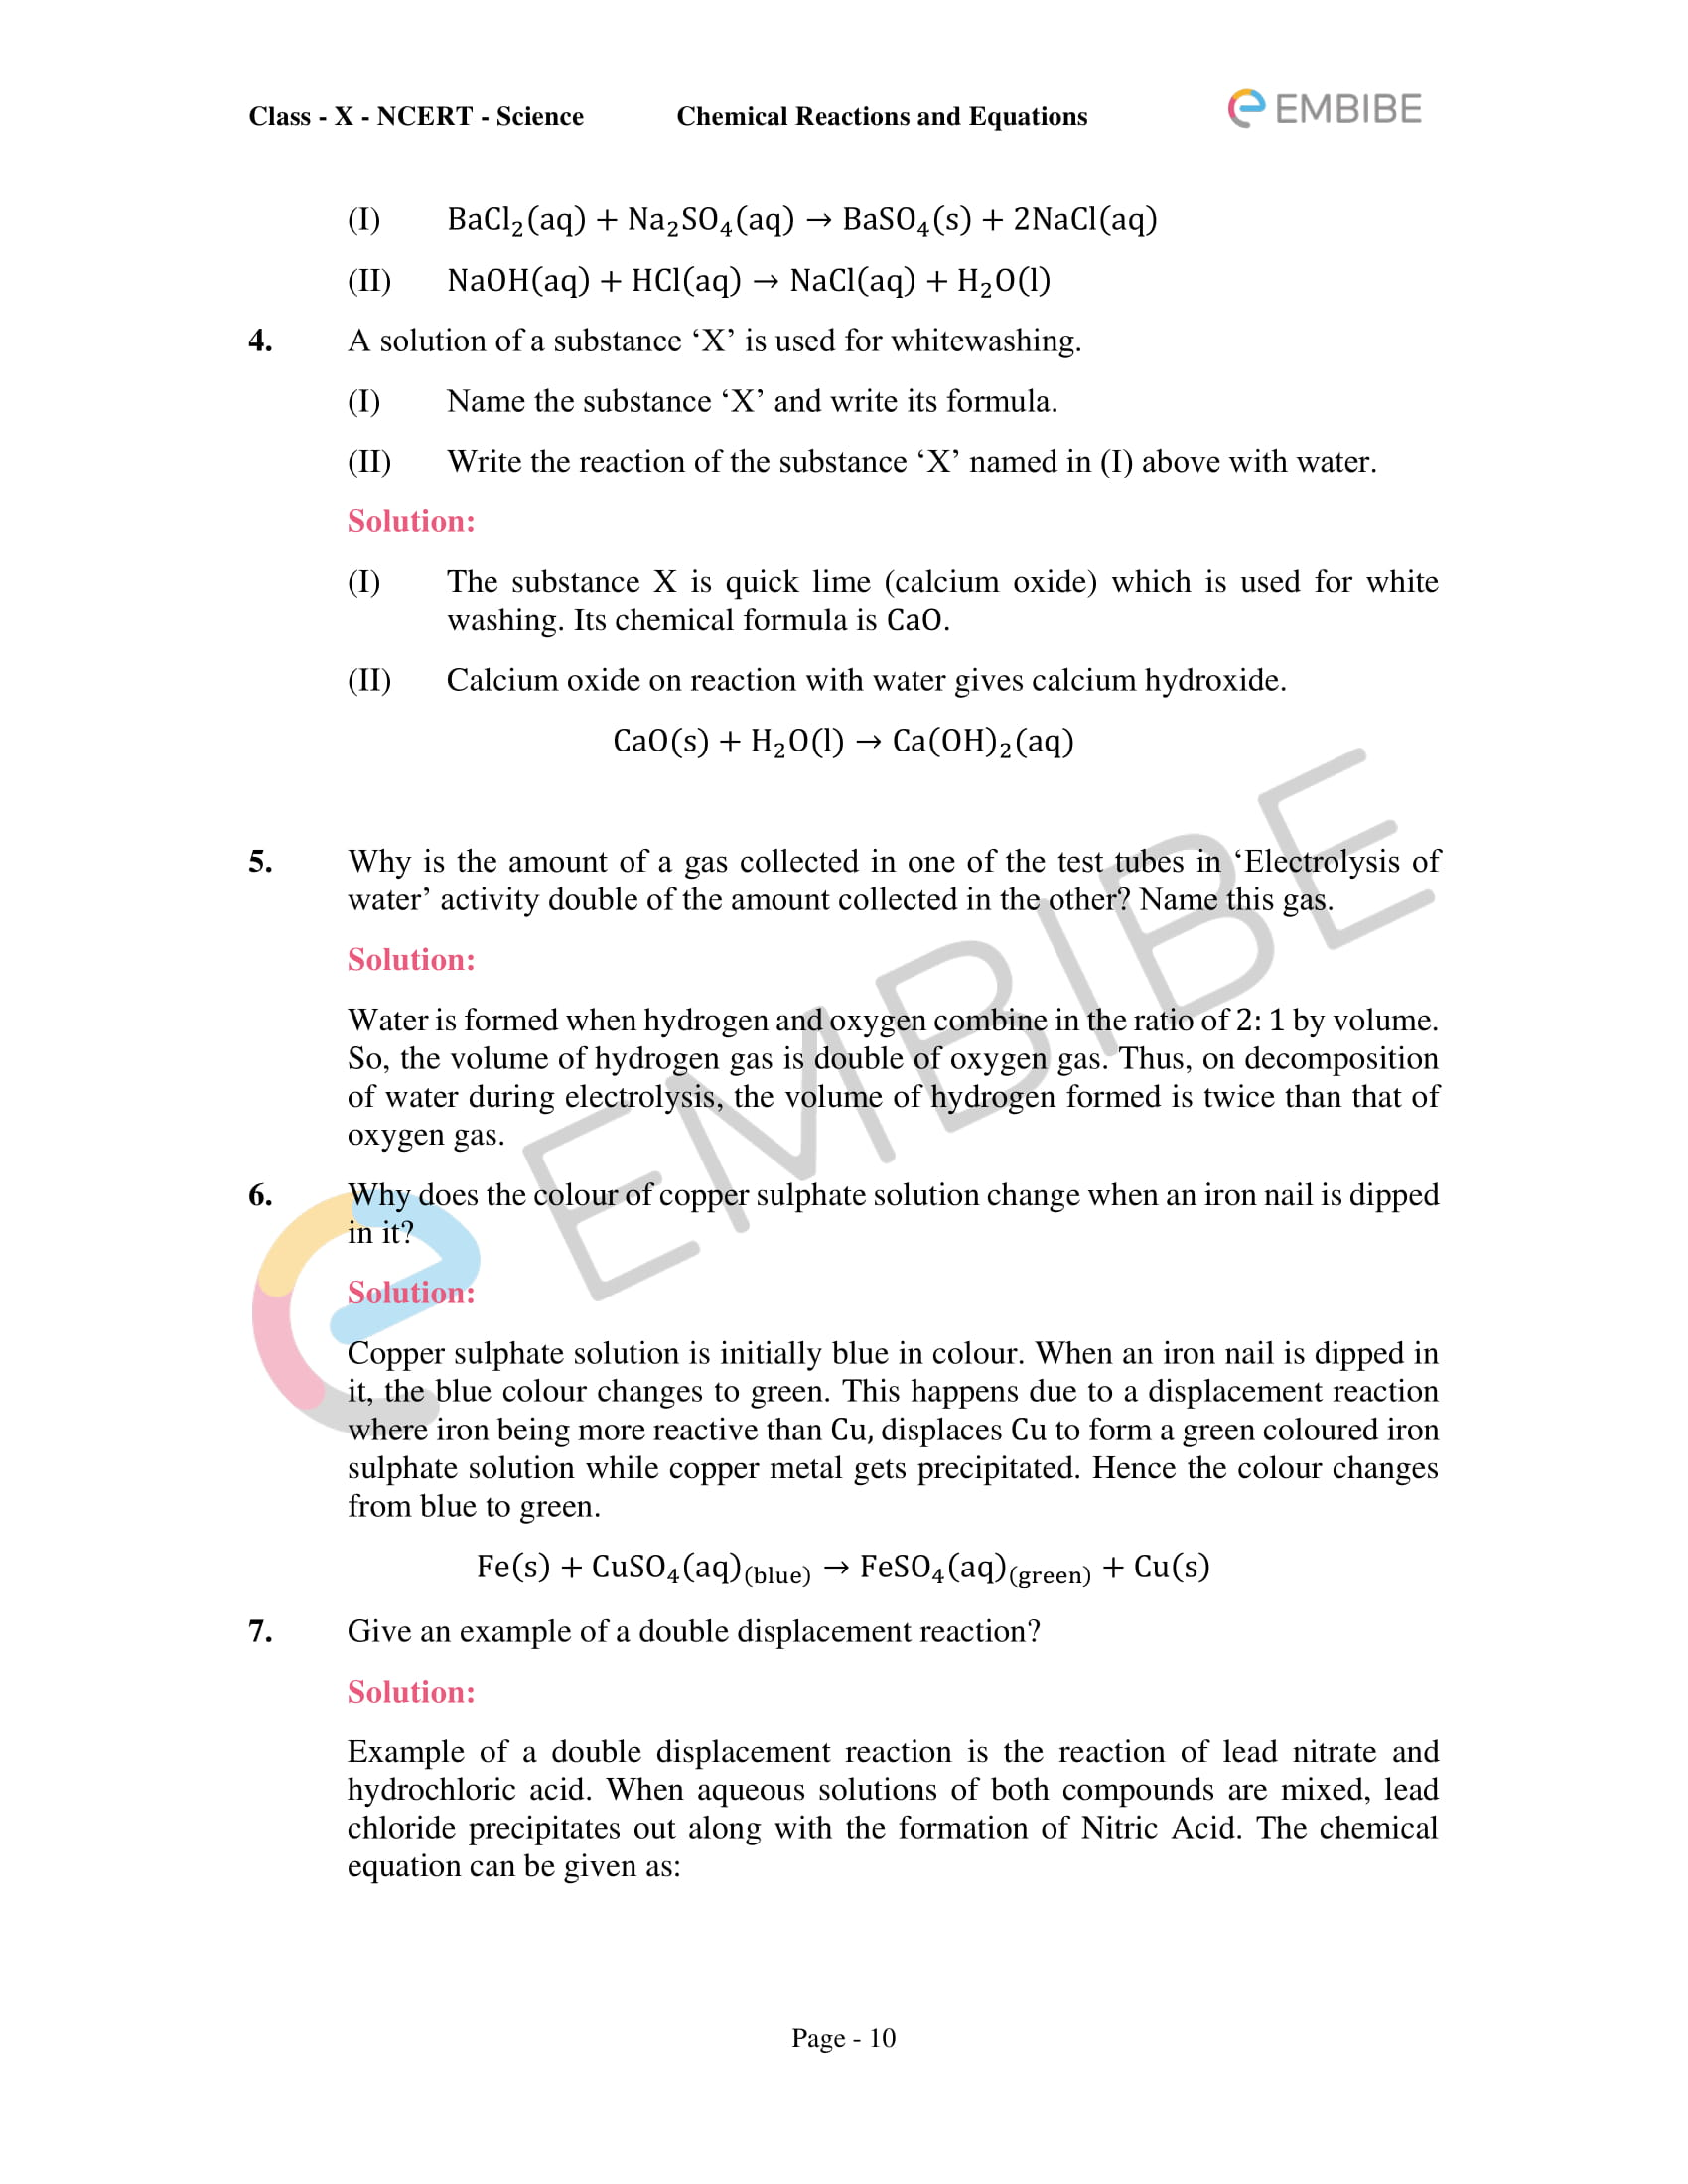 CBSE NCERT Solutions for Class 10 Science Chapter 1: Chemical Reactions And Equations-10